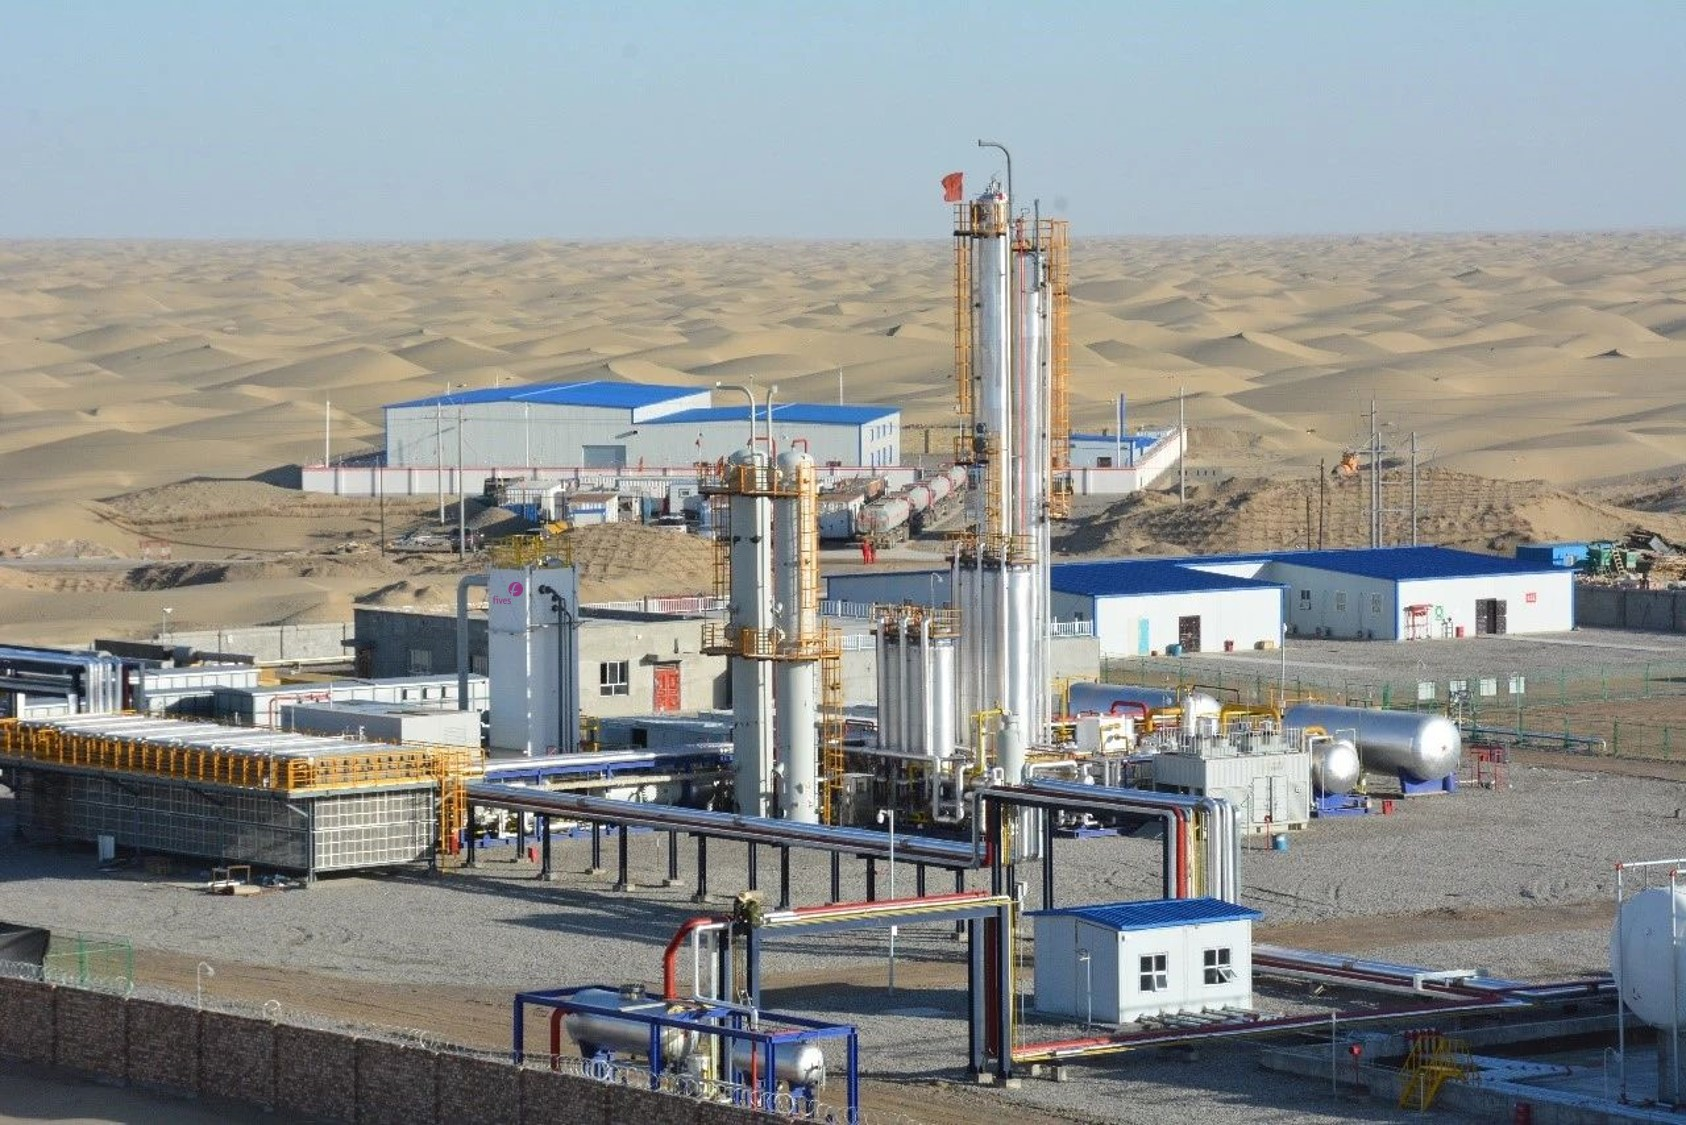 Fives cold boxes at the core of the largest LNG project in the Aksu Desert